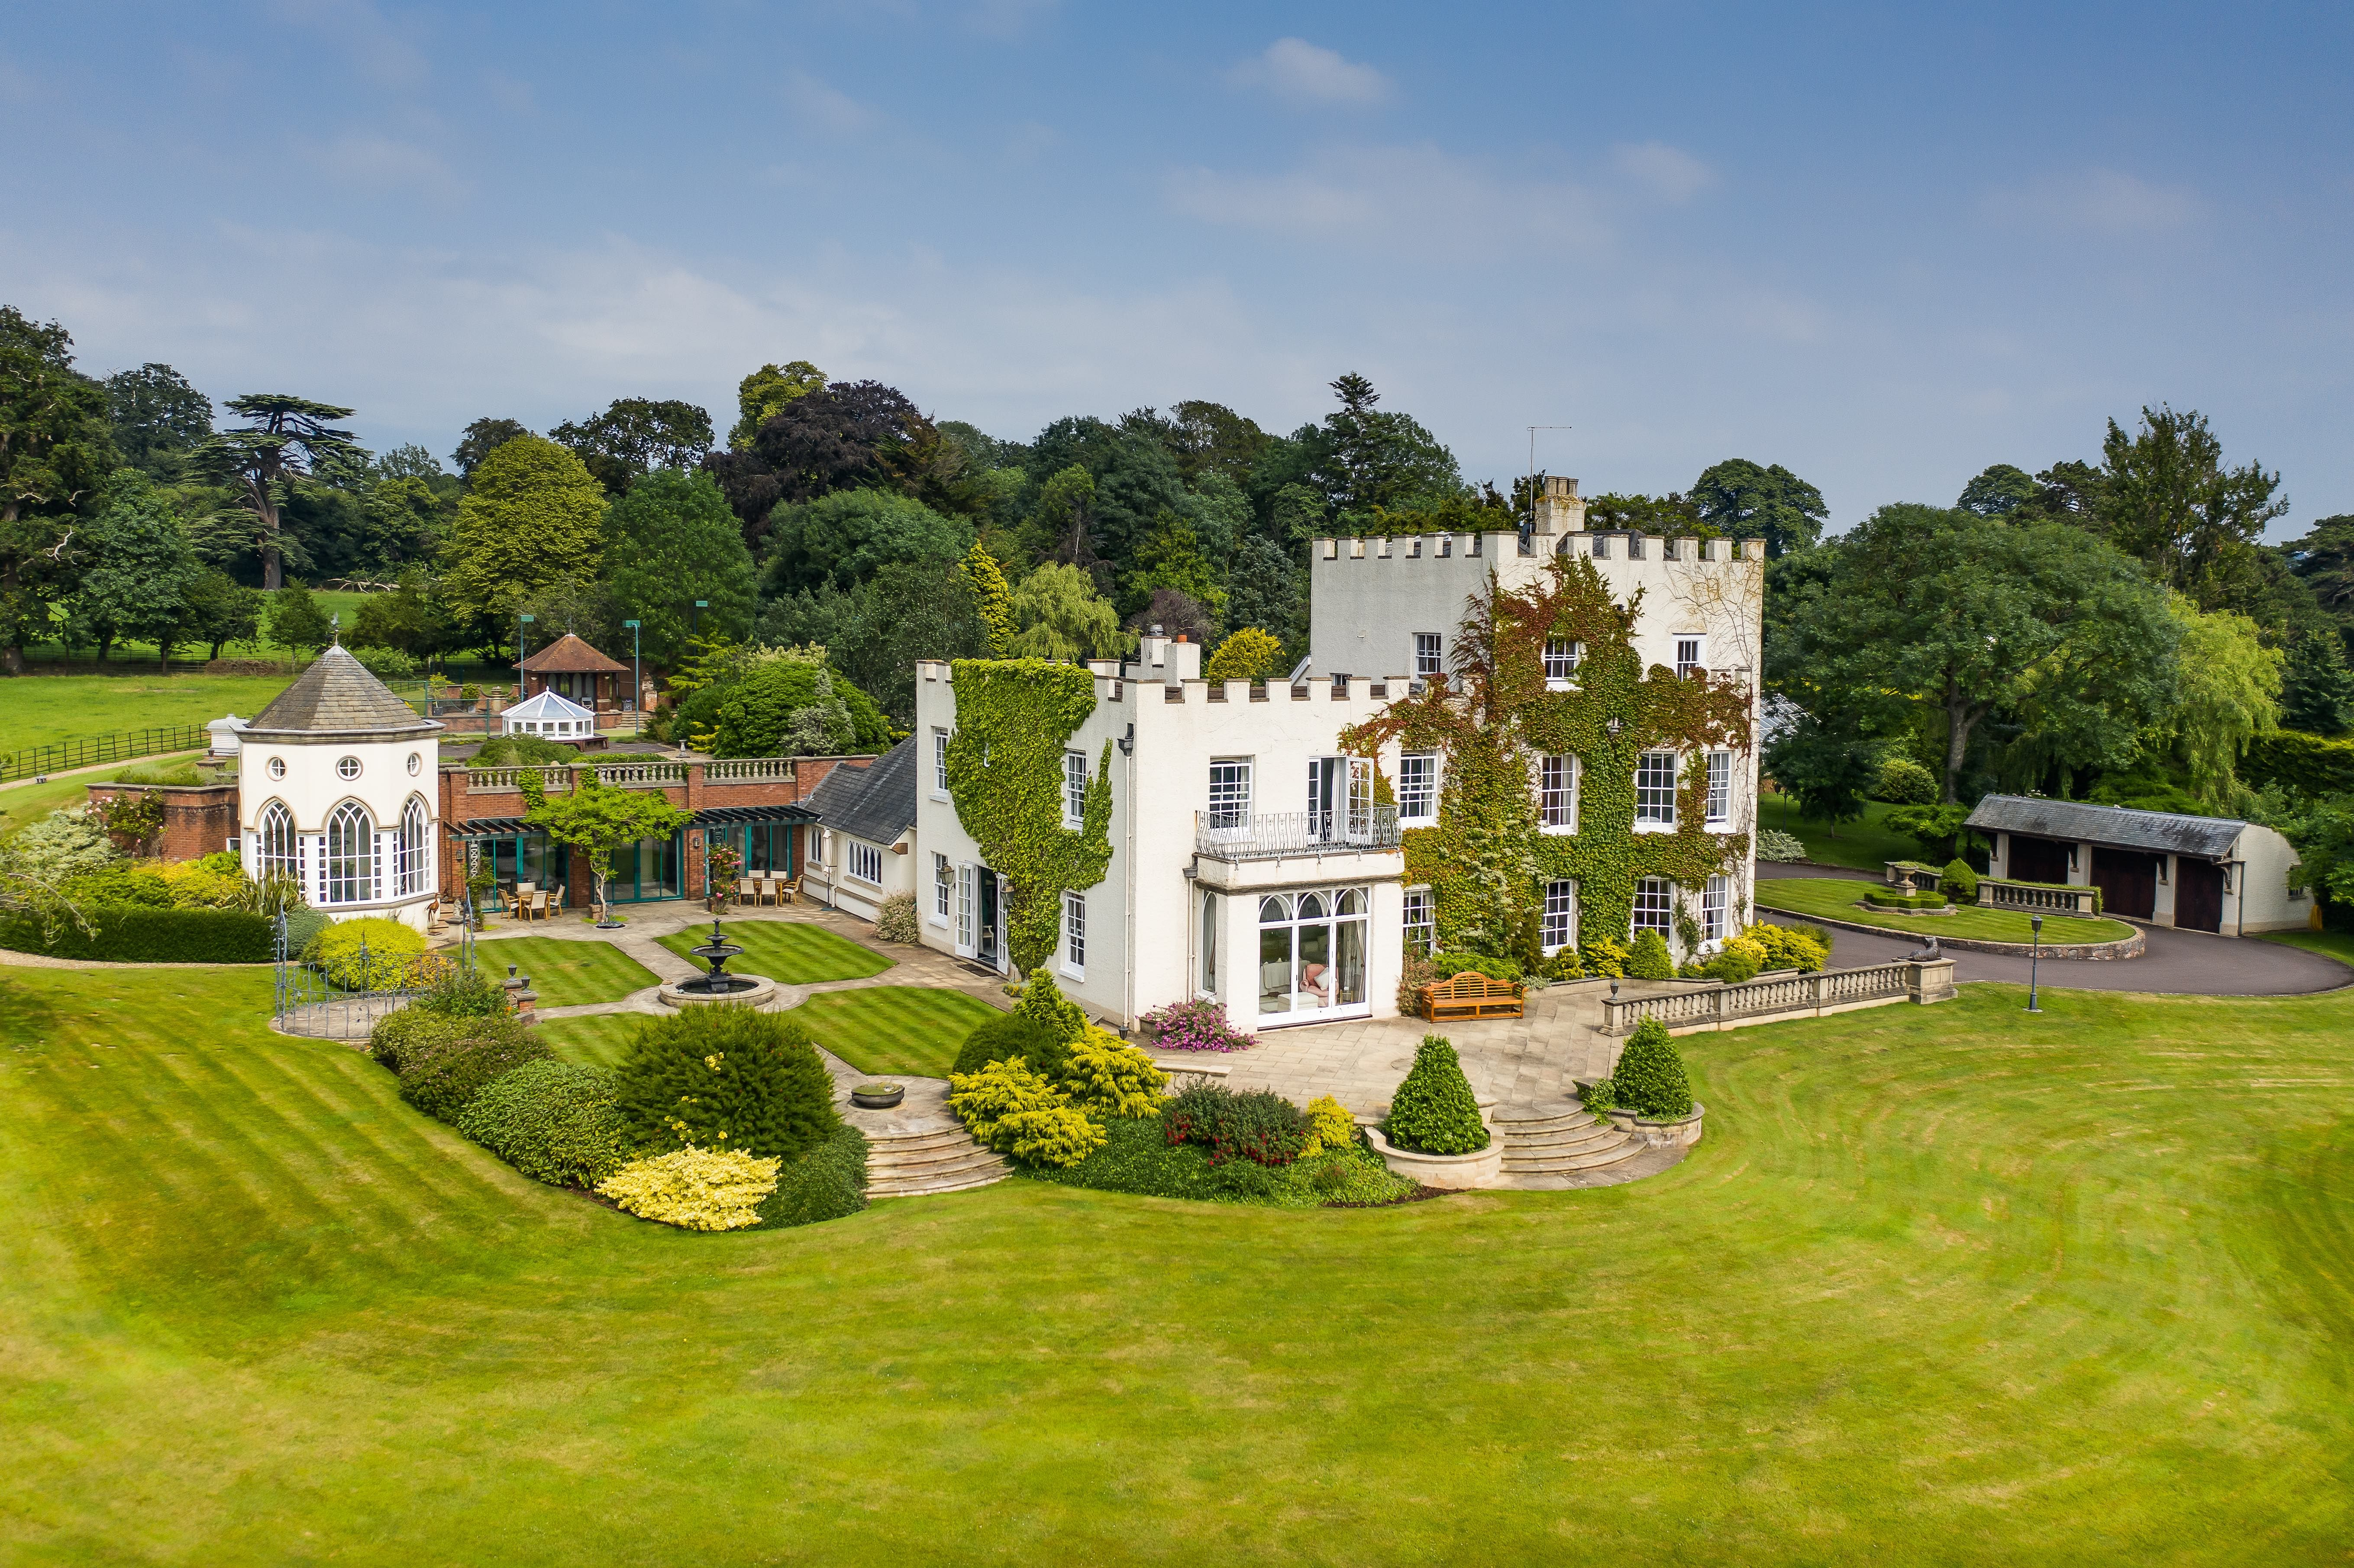 A majestic Grade-II listed property located on Devon's waterfront